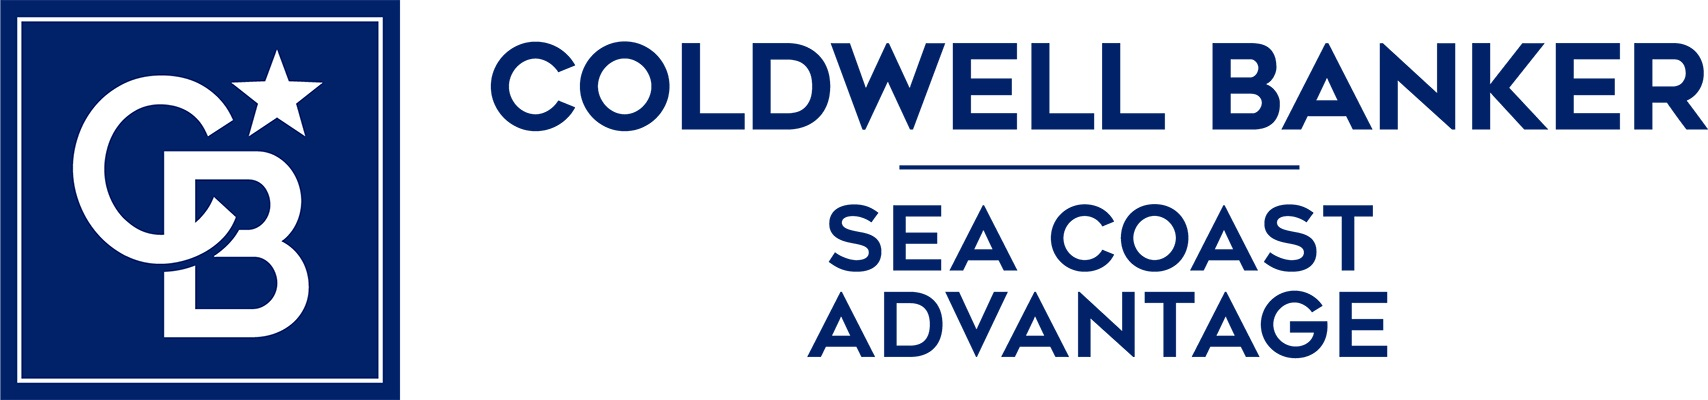 Hannah Delacourt - Coldwell Banker Sea Coast Advantage Realty